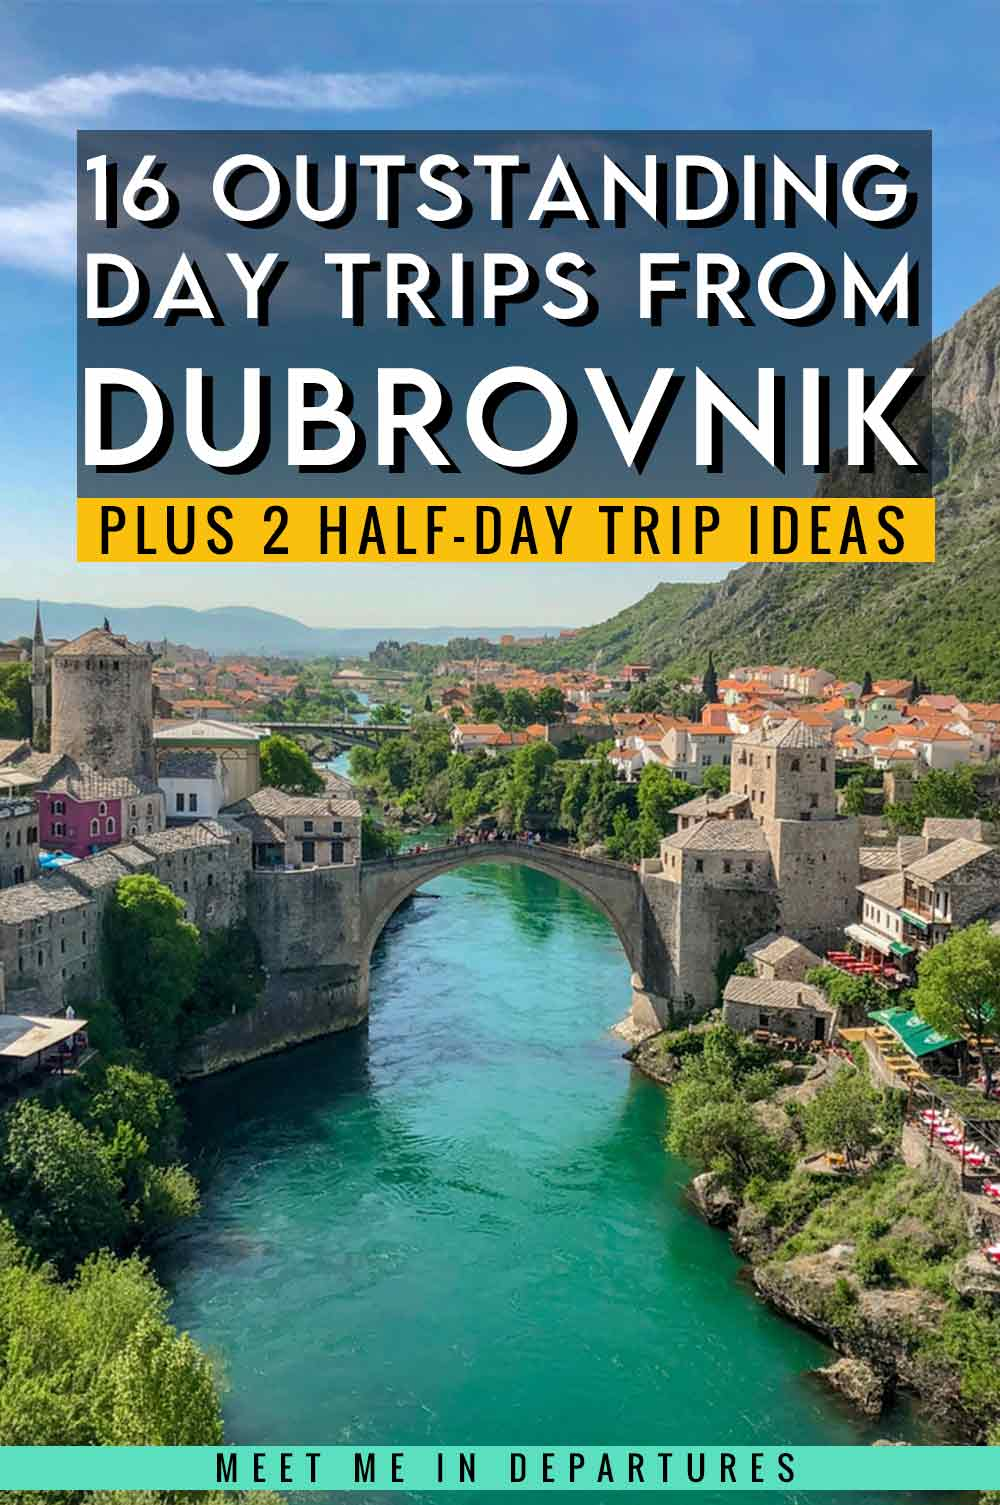 16 Outstanding Day Trips from Dubrovnik + 2 Half Day Dubrovnik Excursions 3